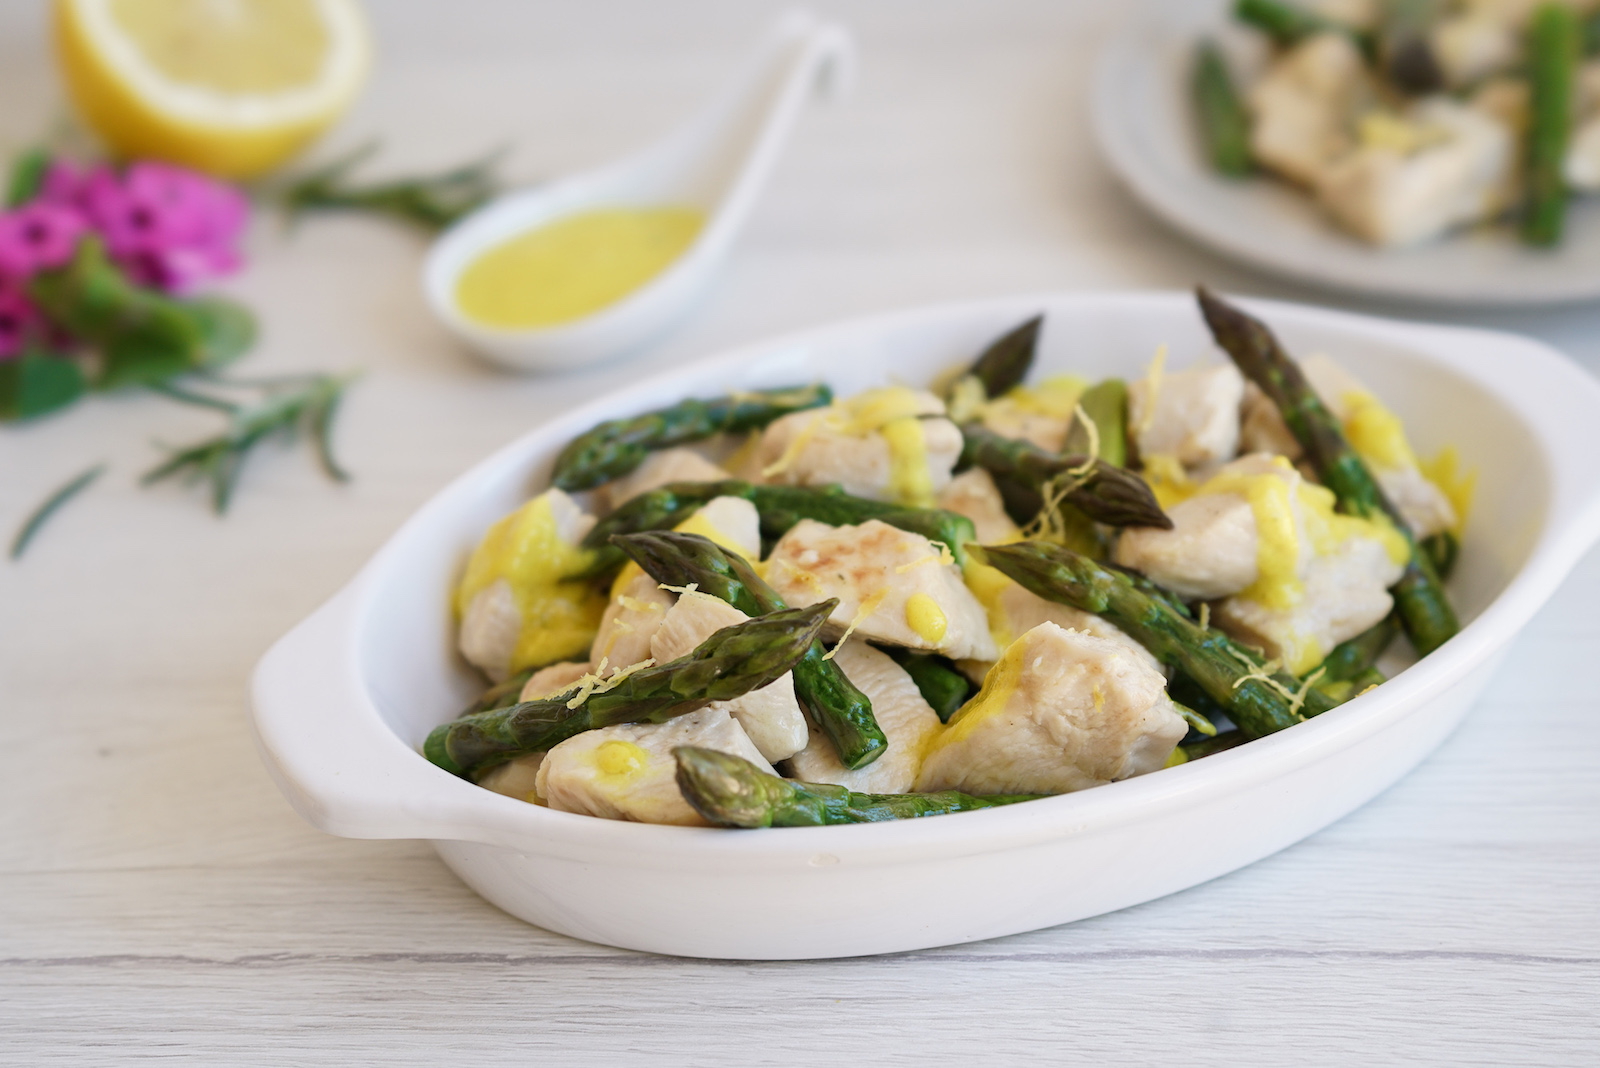 AIP Lemon Chicken with Asparagus - AIP Italian Food Recipes from the AIP Italian Cookbook